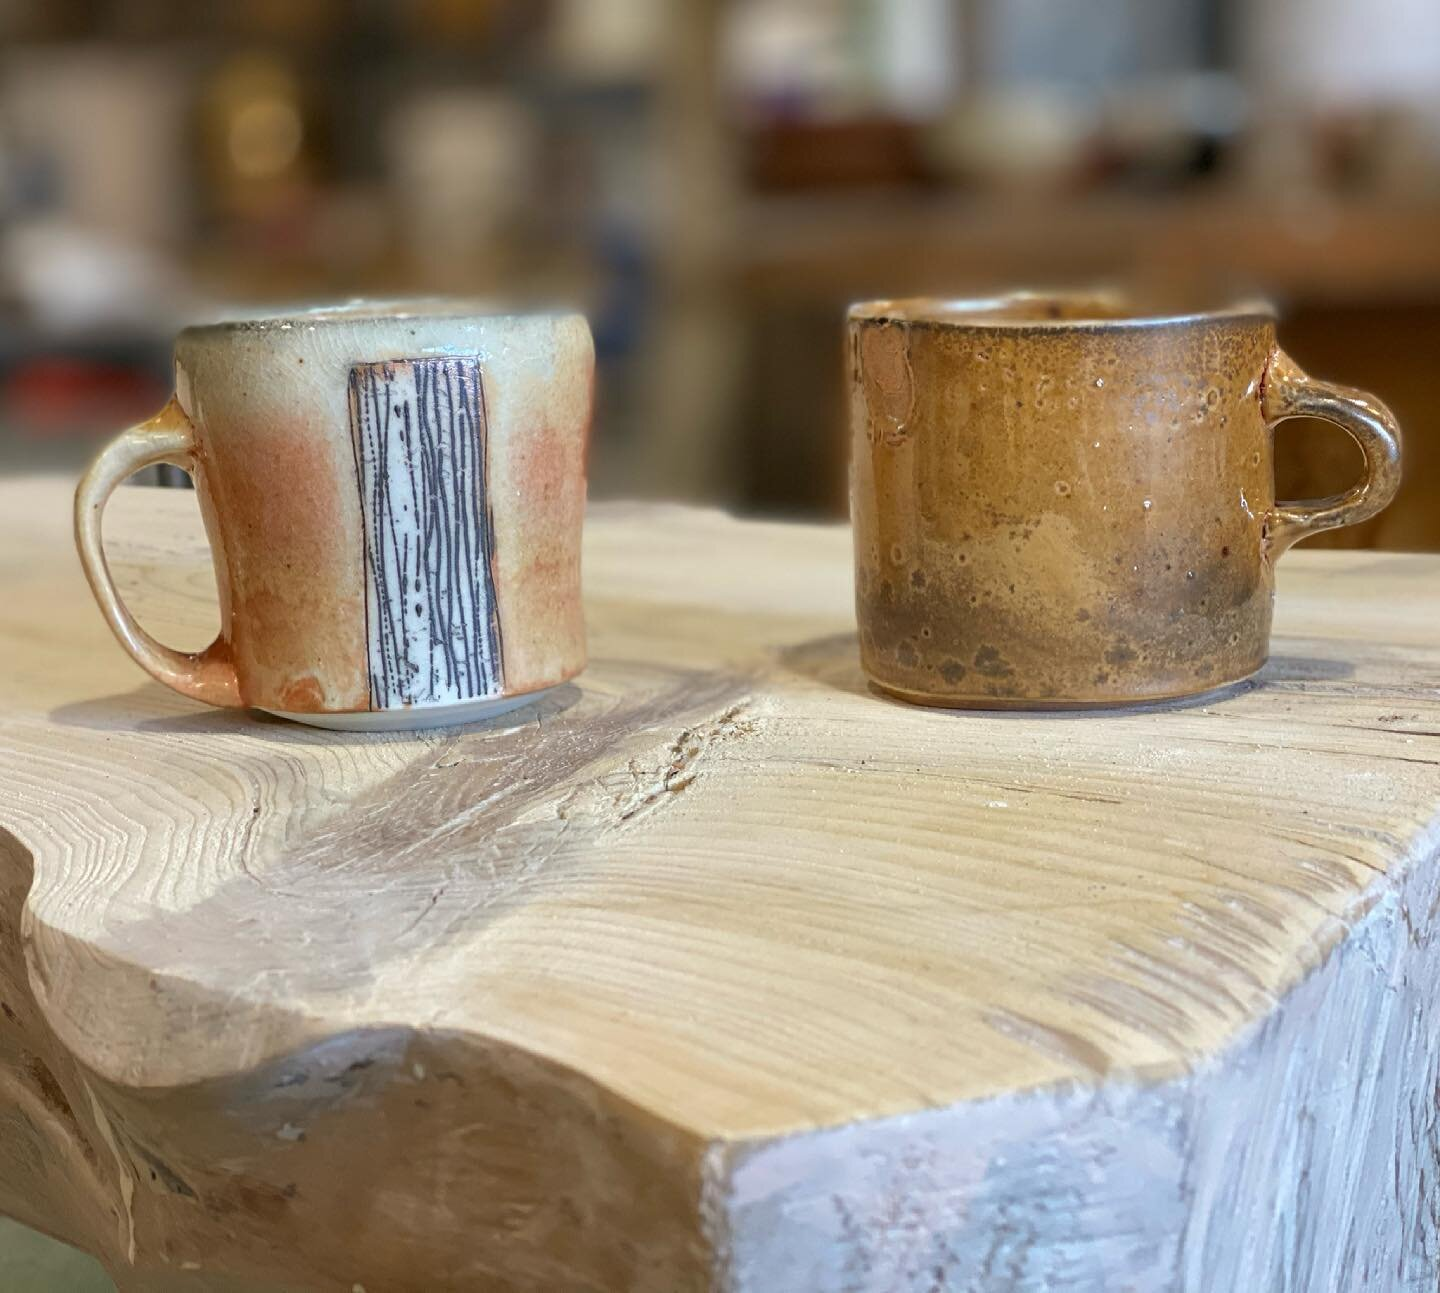 Two of 50 featured pots to added to our website April 1st! Thanks for looking and Happy Monday #mnmade #maineprairiestudio #mugshotmonday #gaskiln #ceramics #shino #porcelain @meganmitchellceramics @jdjorgensonpottery